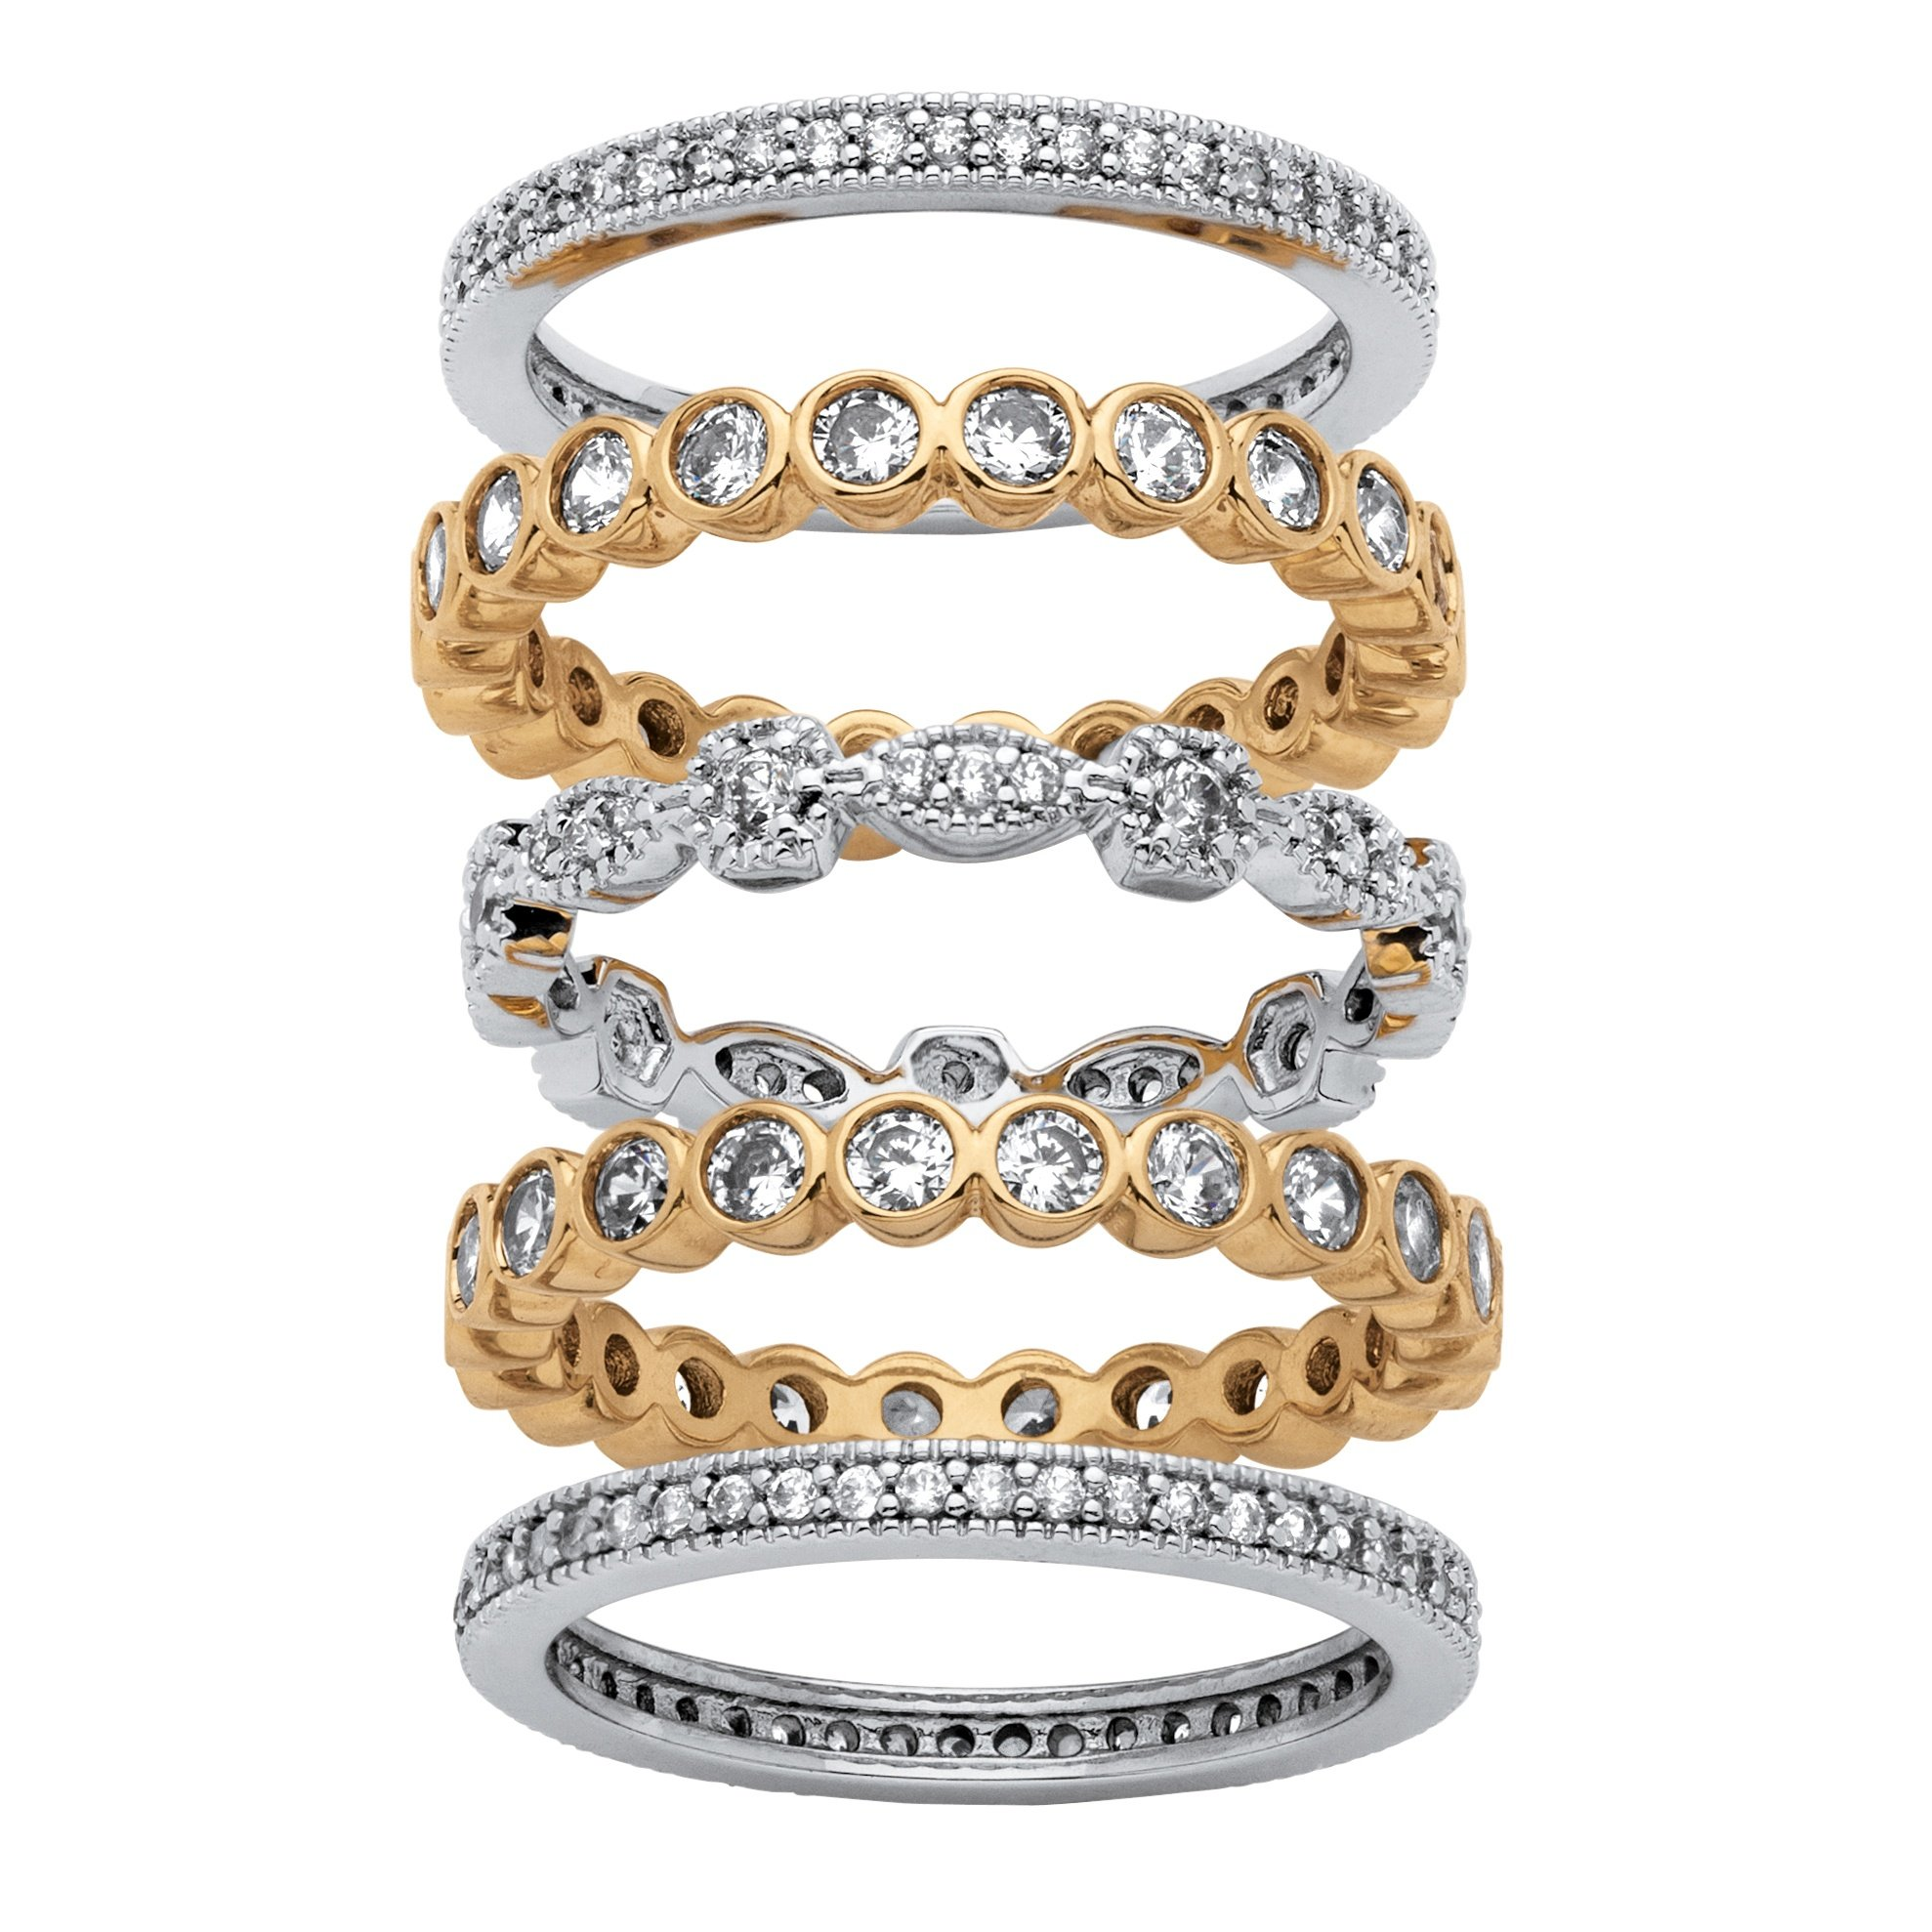 Seta Jewelry Cubic Zirconia 14K Gold-Plated and Silvertone 5-Piece Stackable Eternity Bands